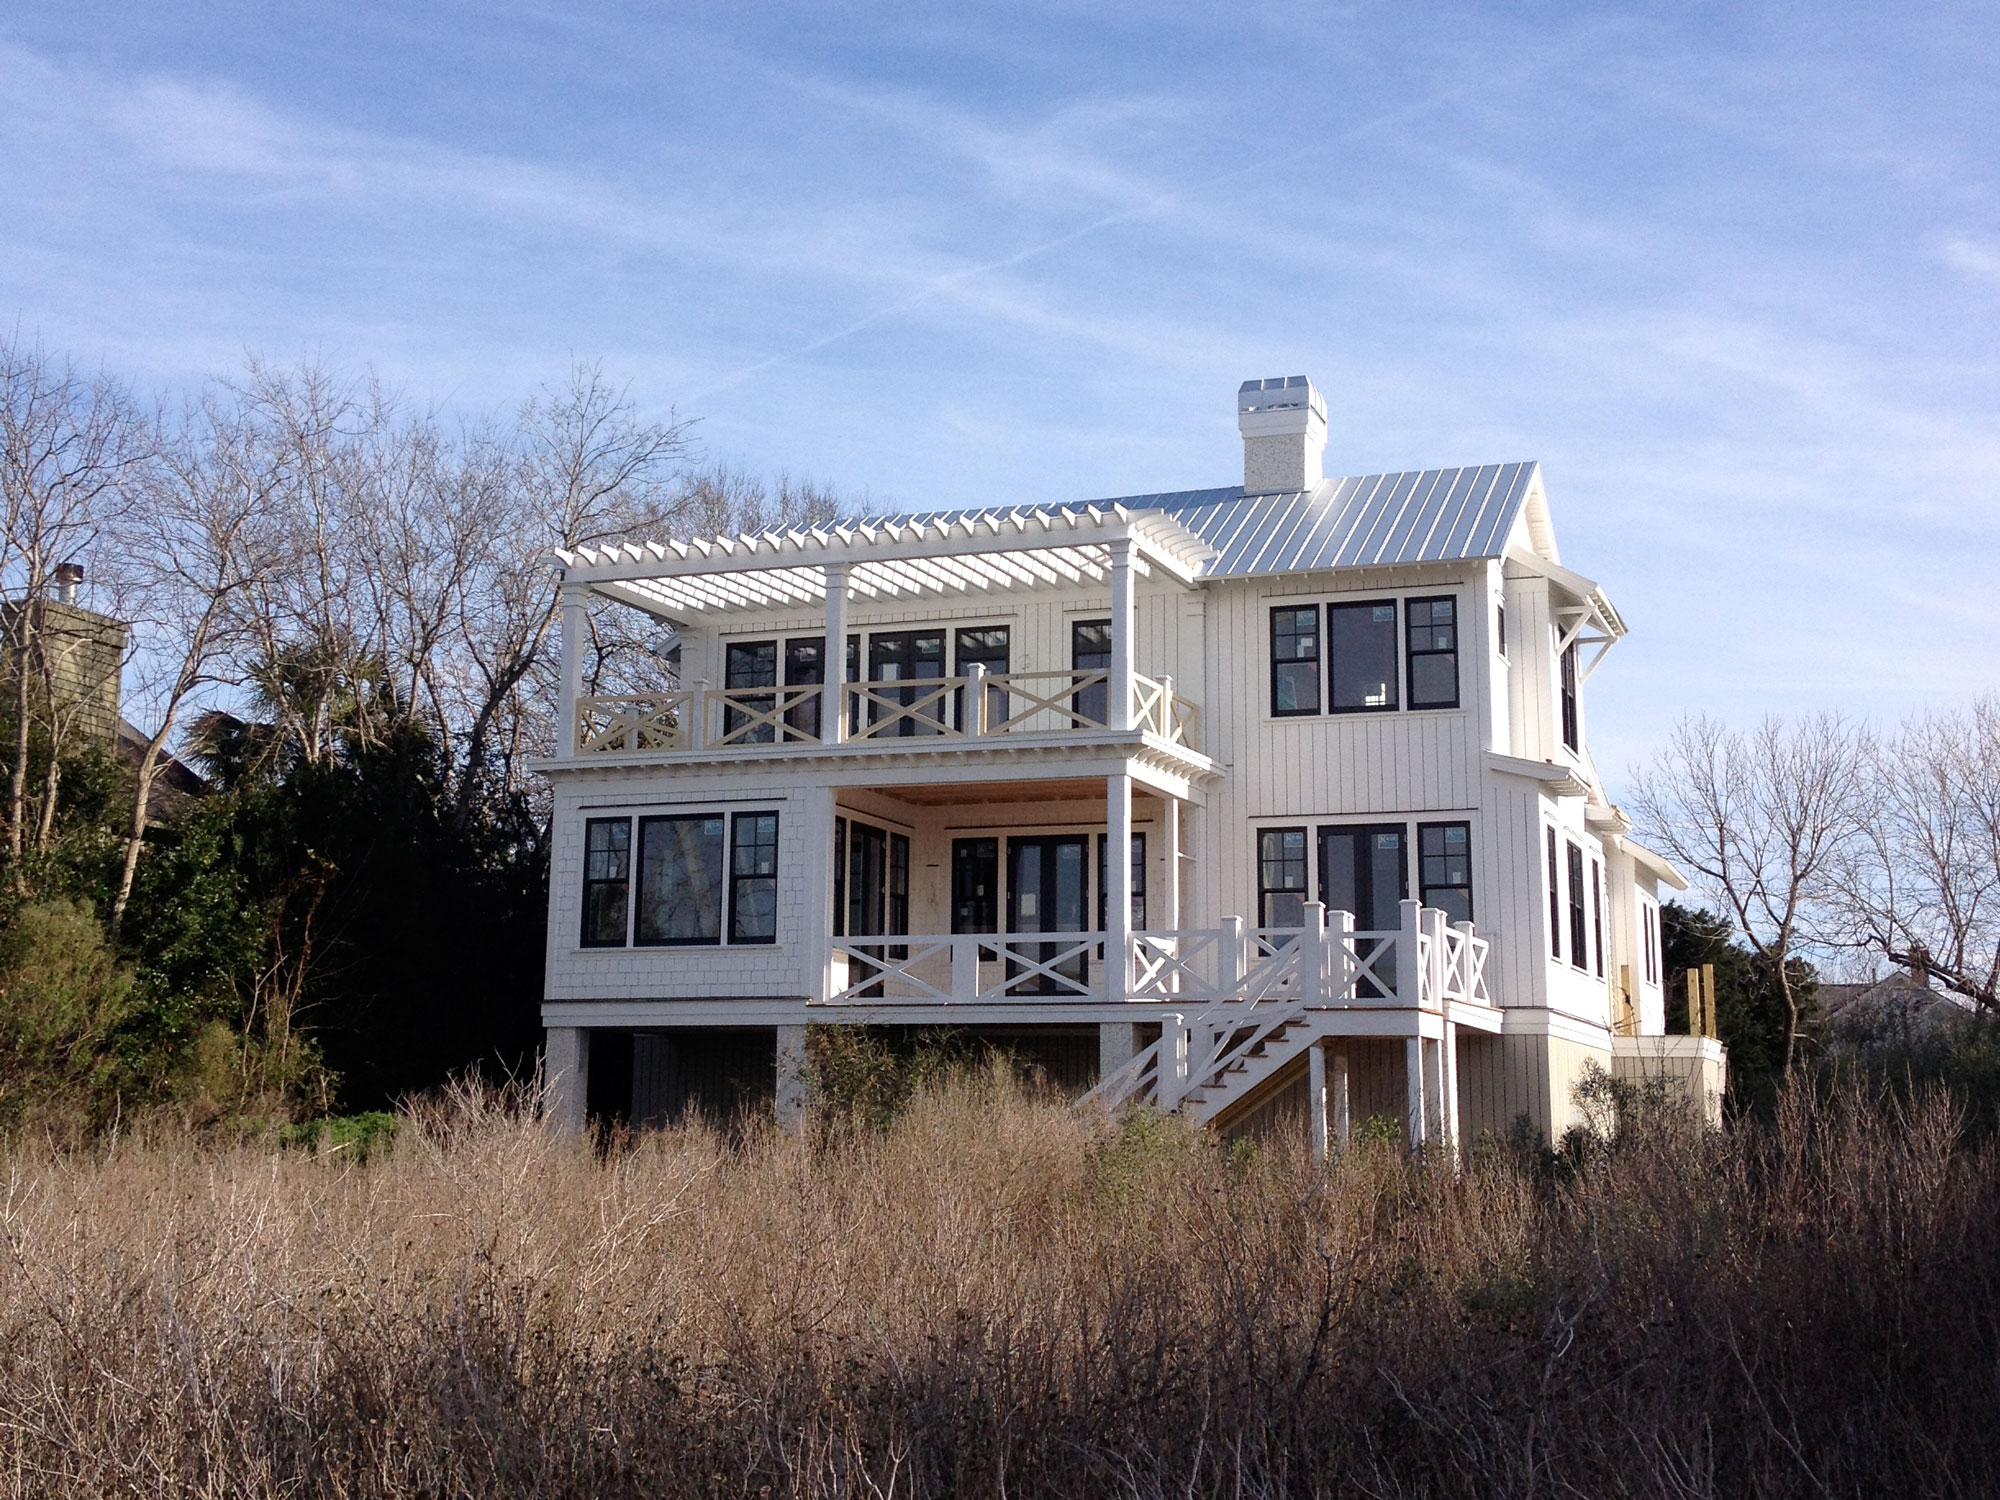 Backside view of coastal home with porches and metal room